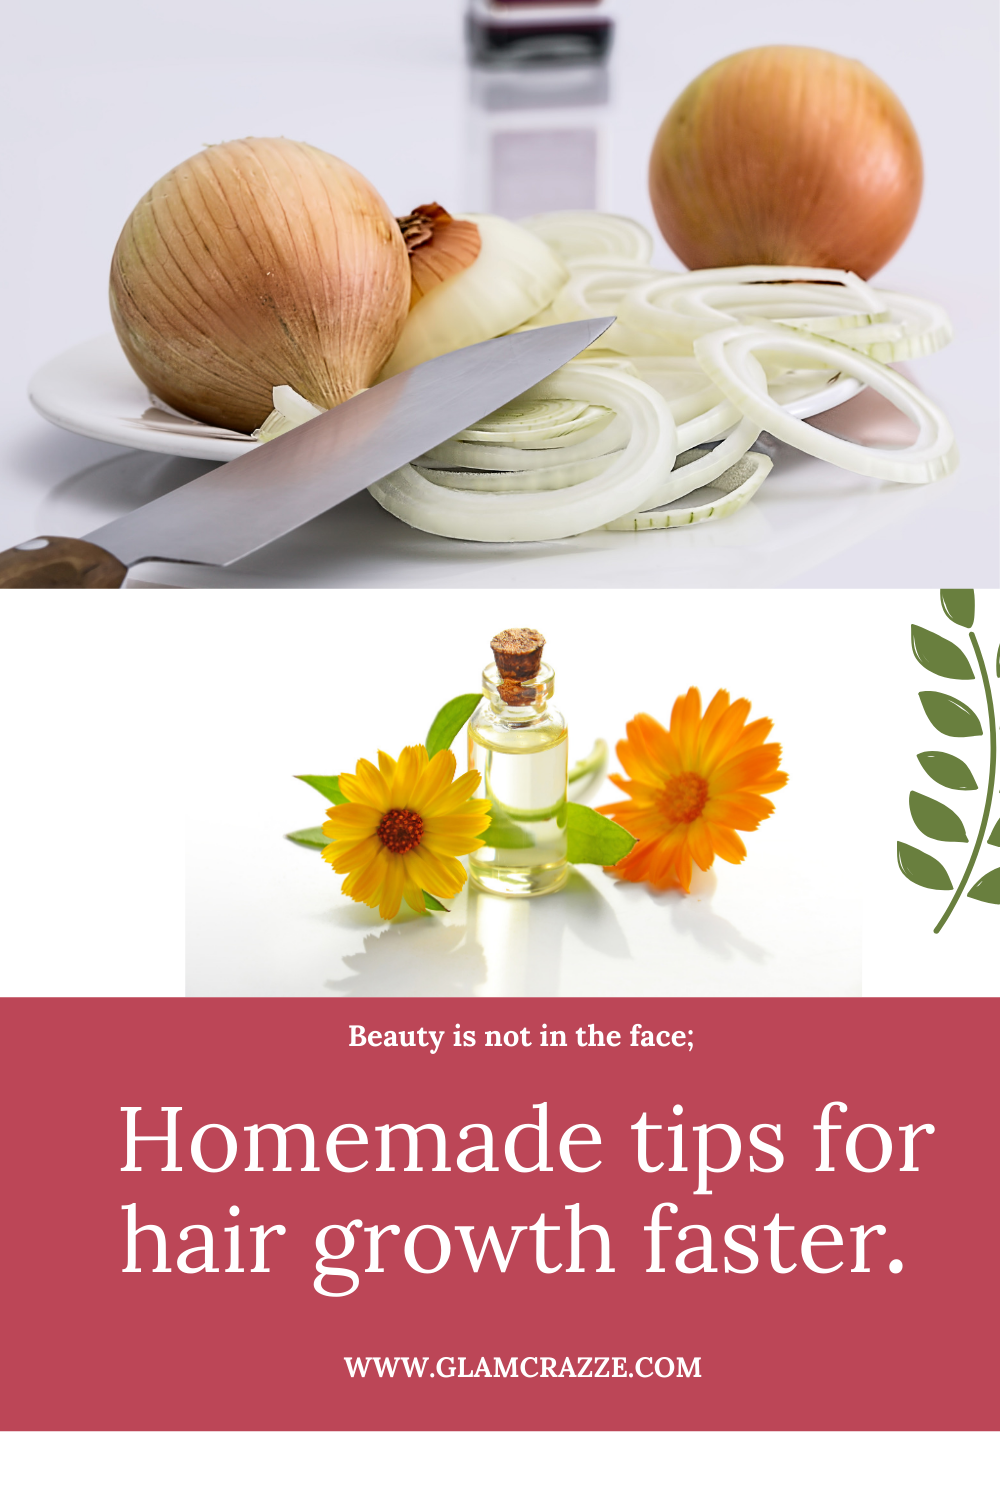 Homemade tips for hair growth faster with onion